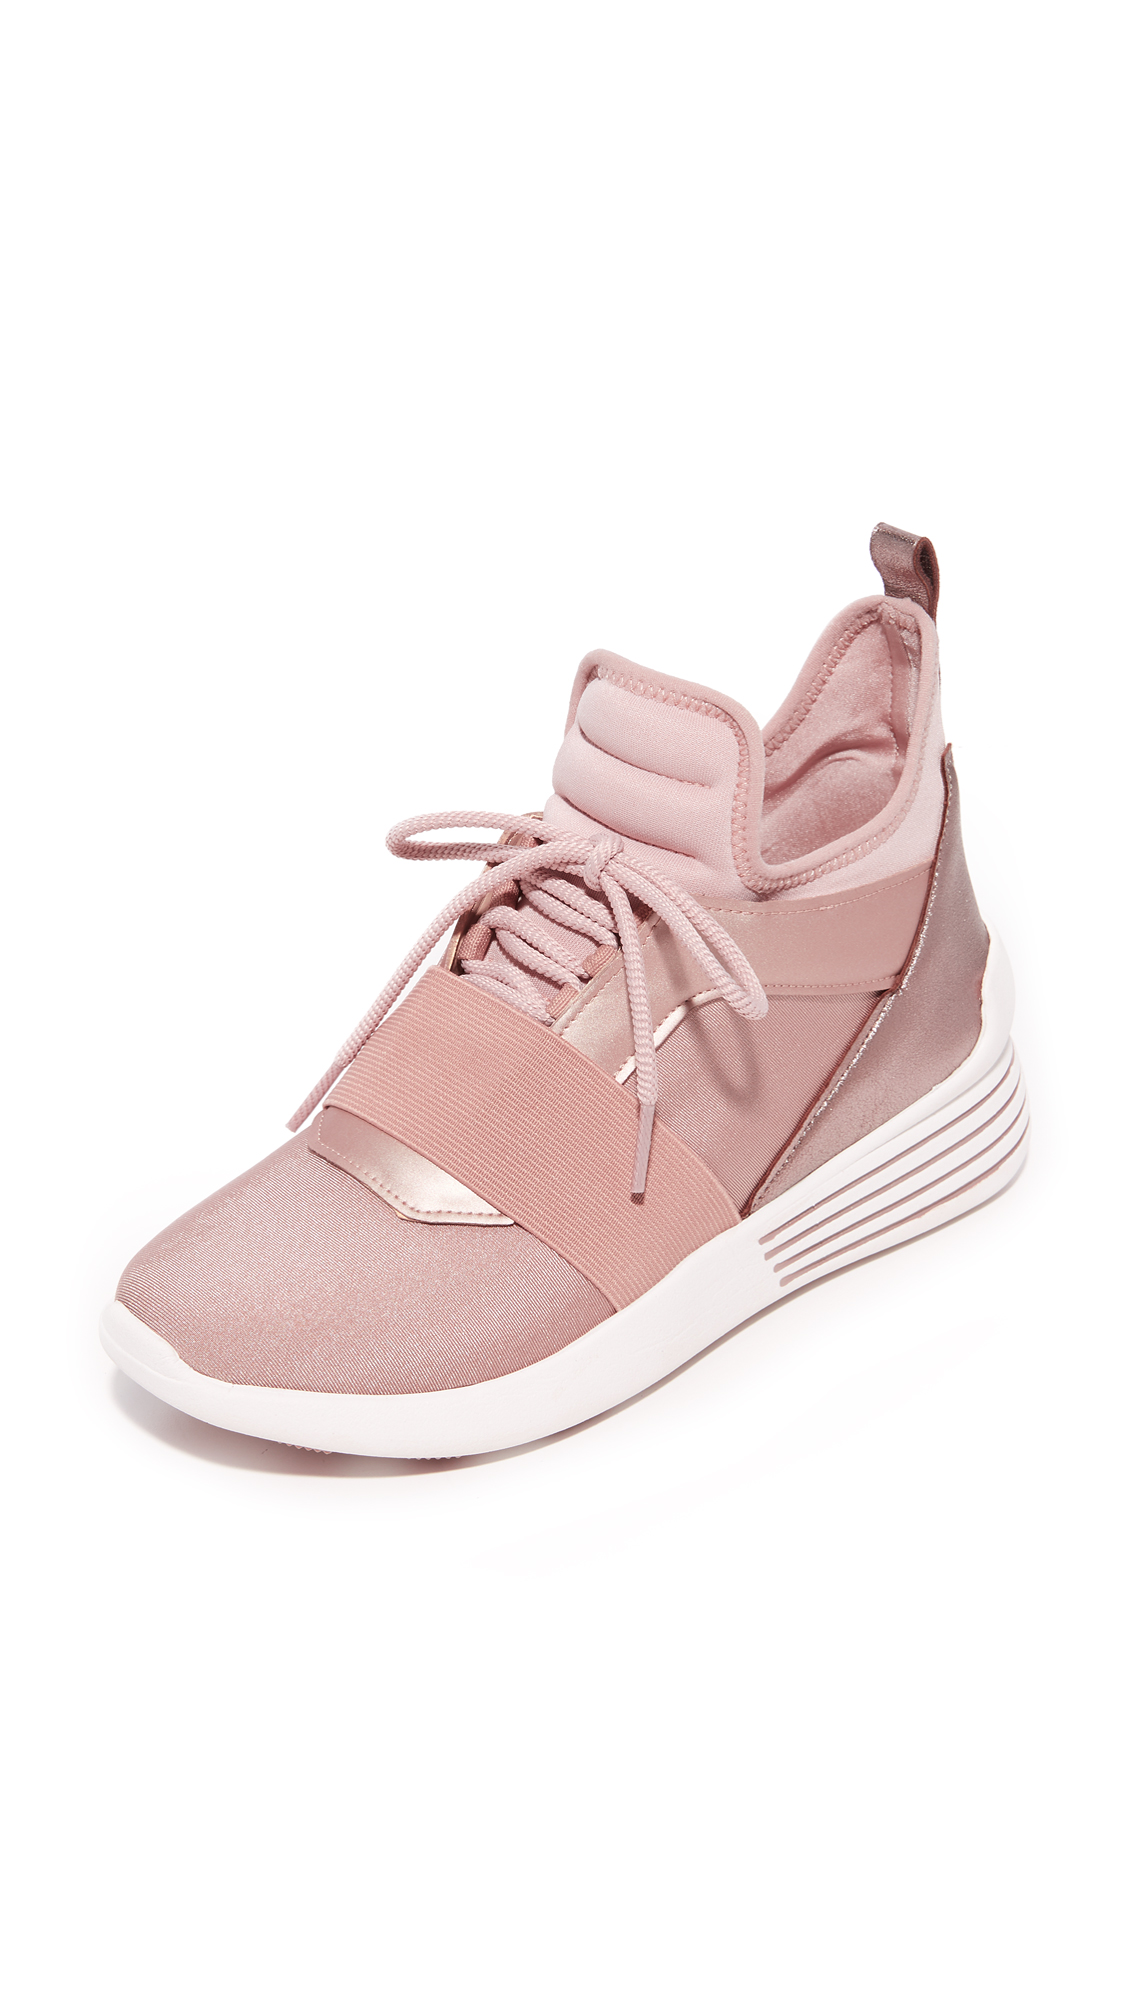 KENDALL + KYLIE Braydin 3 Trainers - Rose Gold